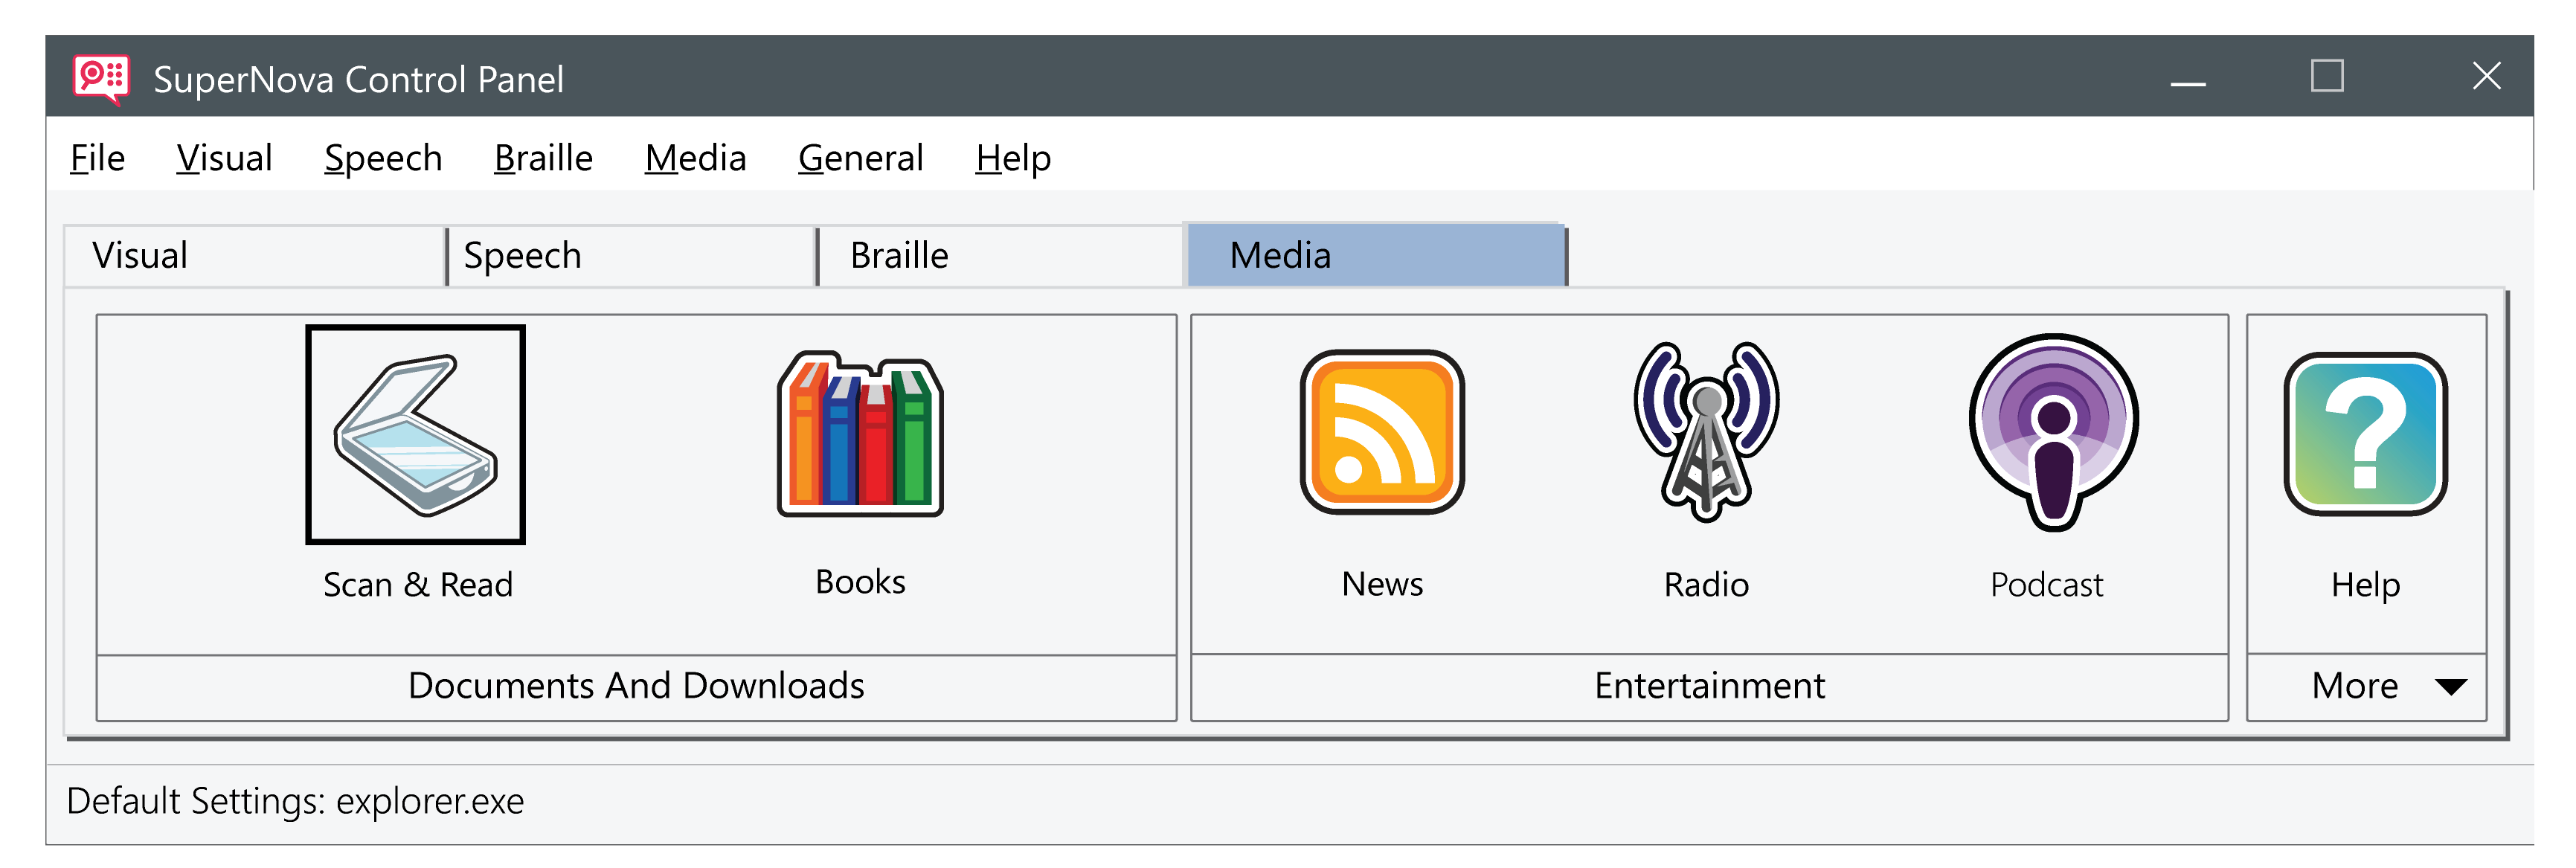 the new Media tab in the new SUpernova 16 control panel